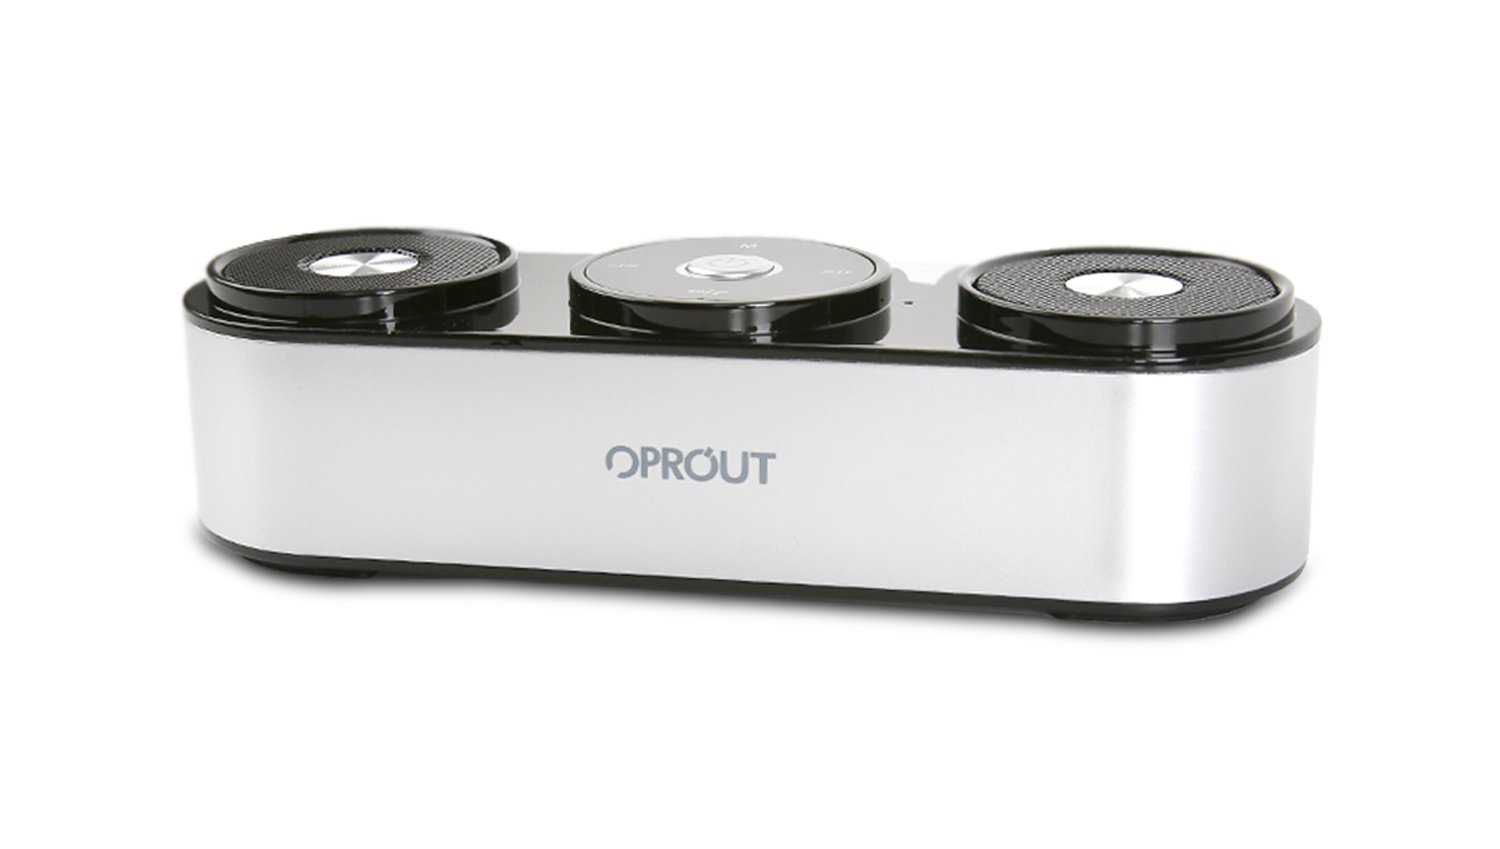 Bluetooth Speakers, OPROUT 10W Portable Wireless Speakers with 20h Playtime, Computer Speaker with Dual-Driver Enhanced Bass Resonator (Silver)